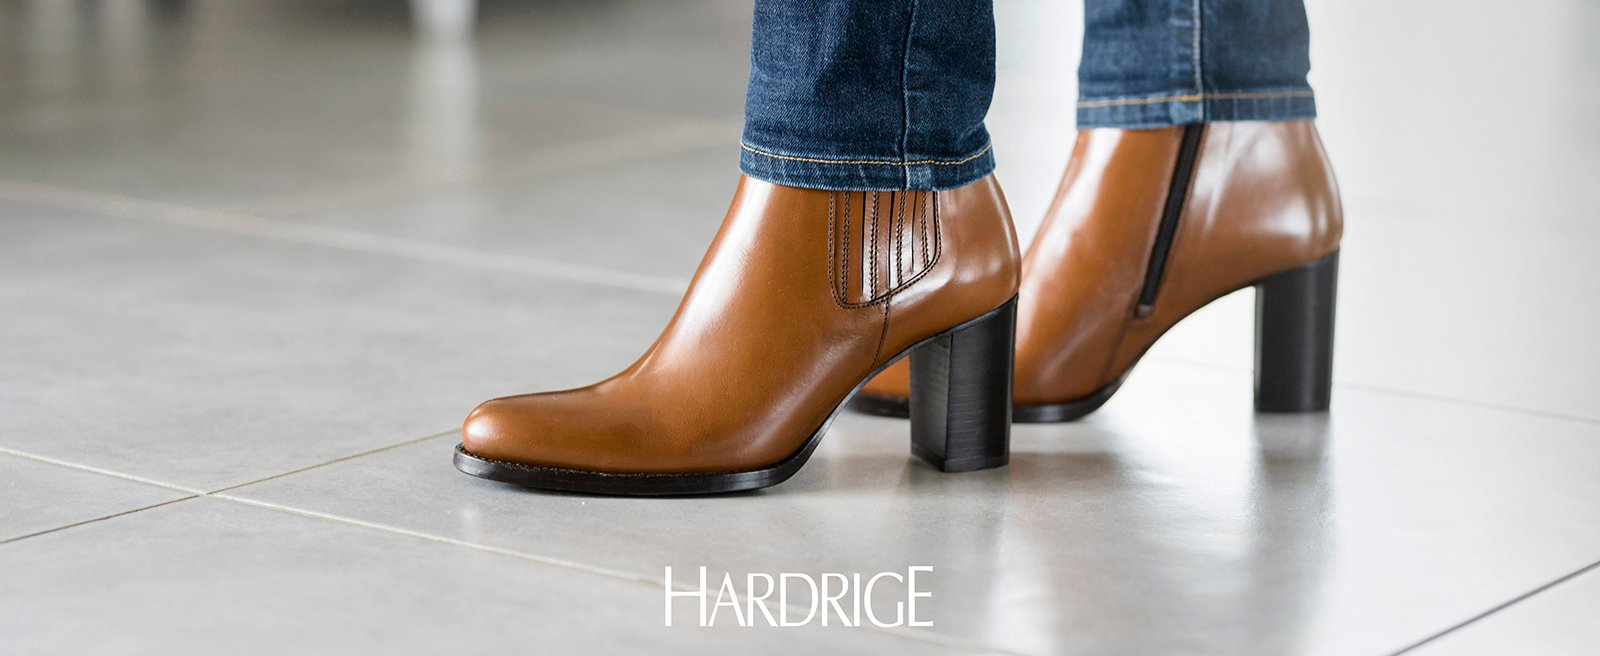 Boutique Hardrige - Channel Outlet Store